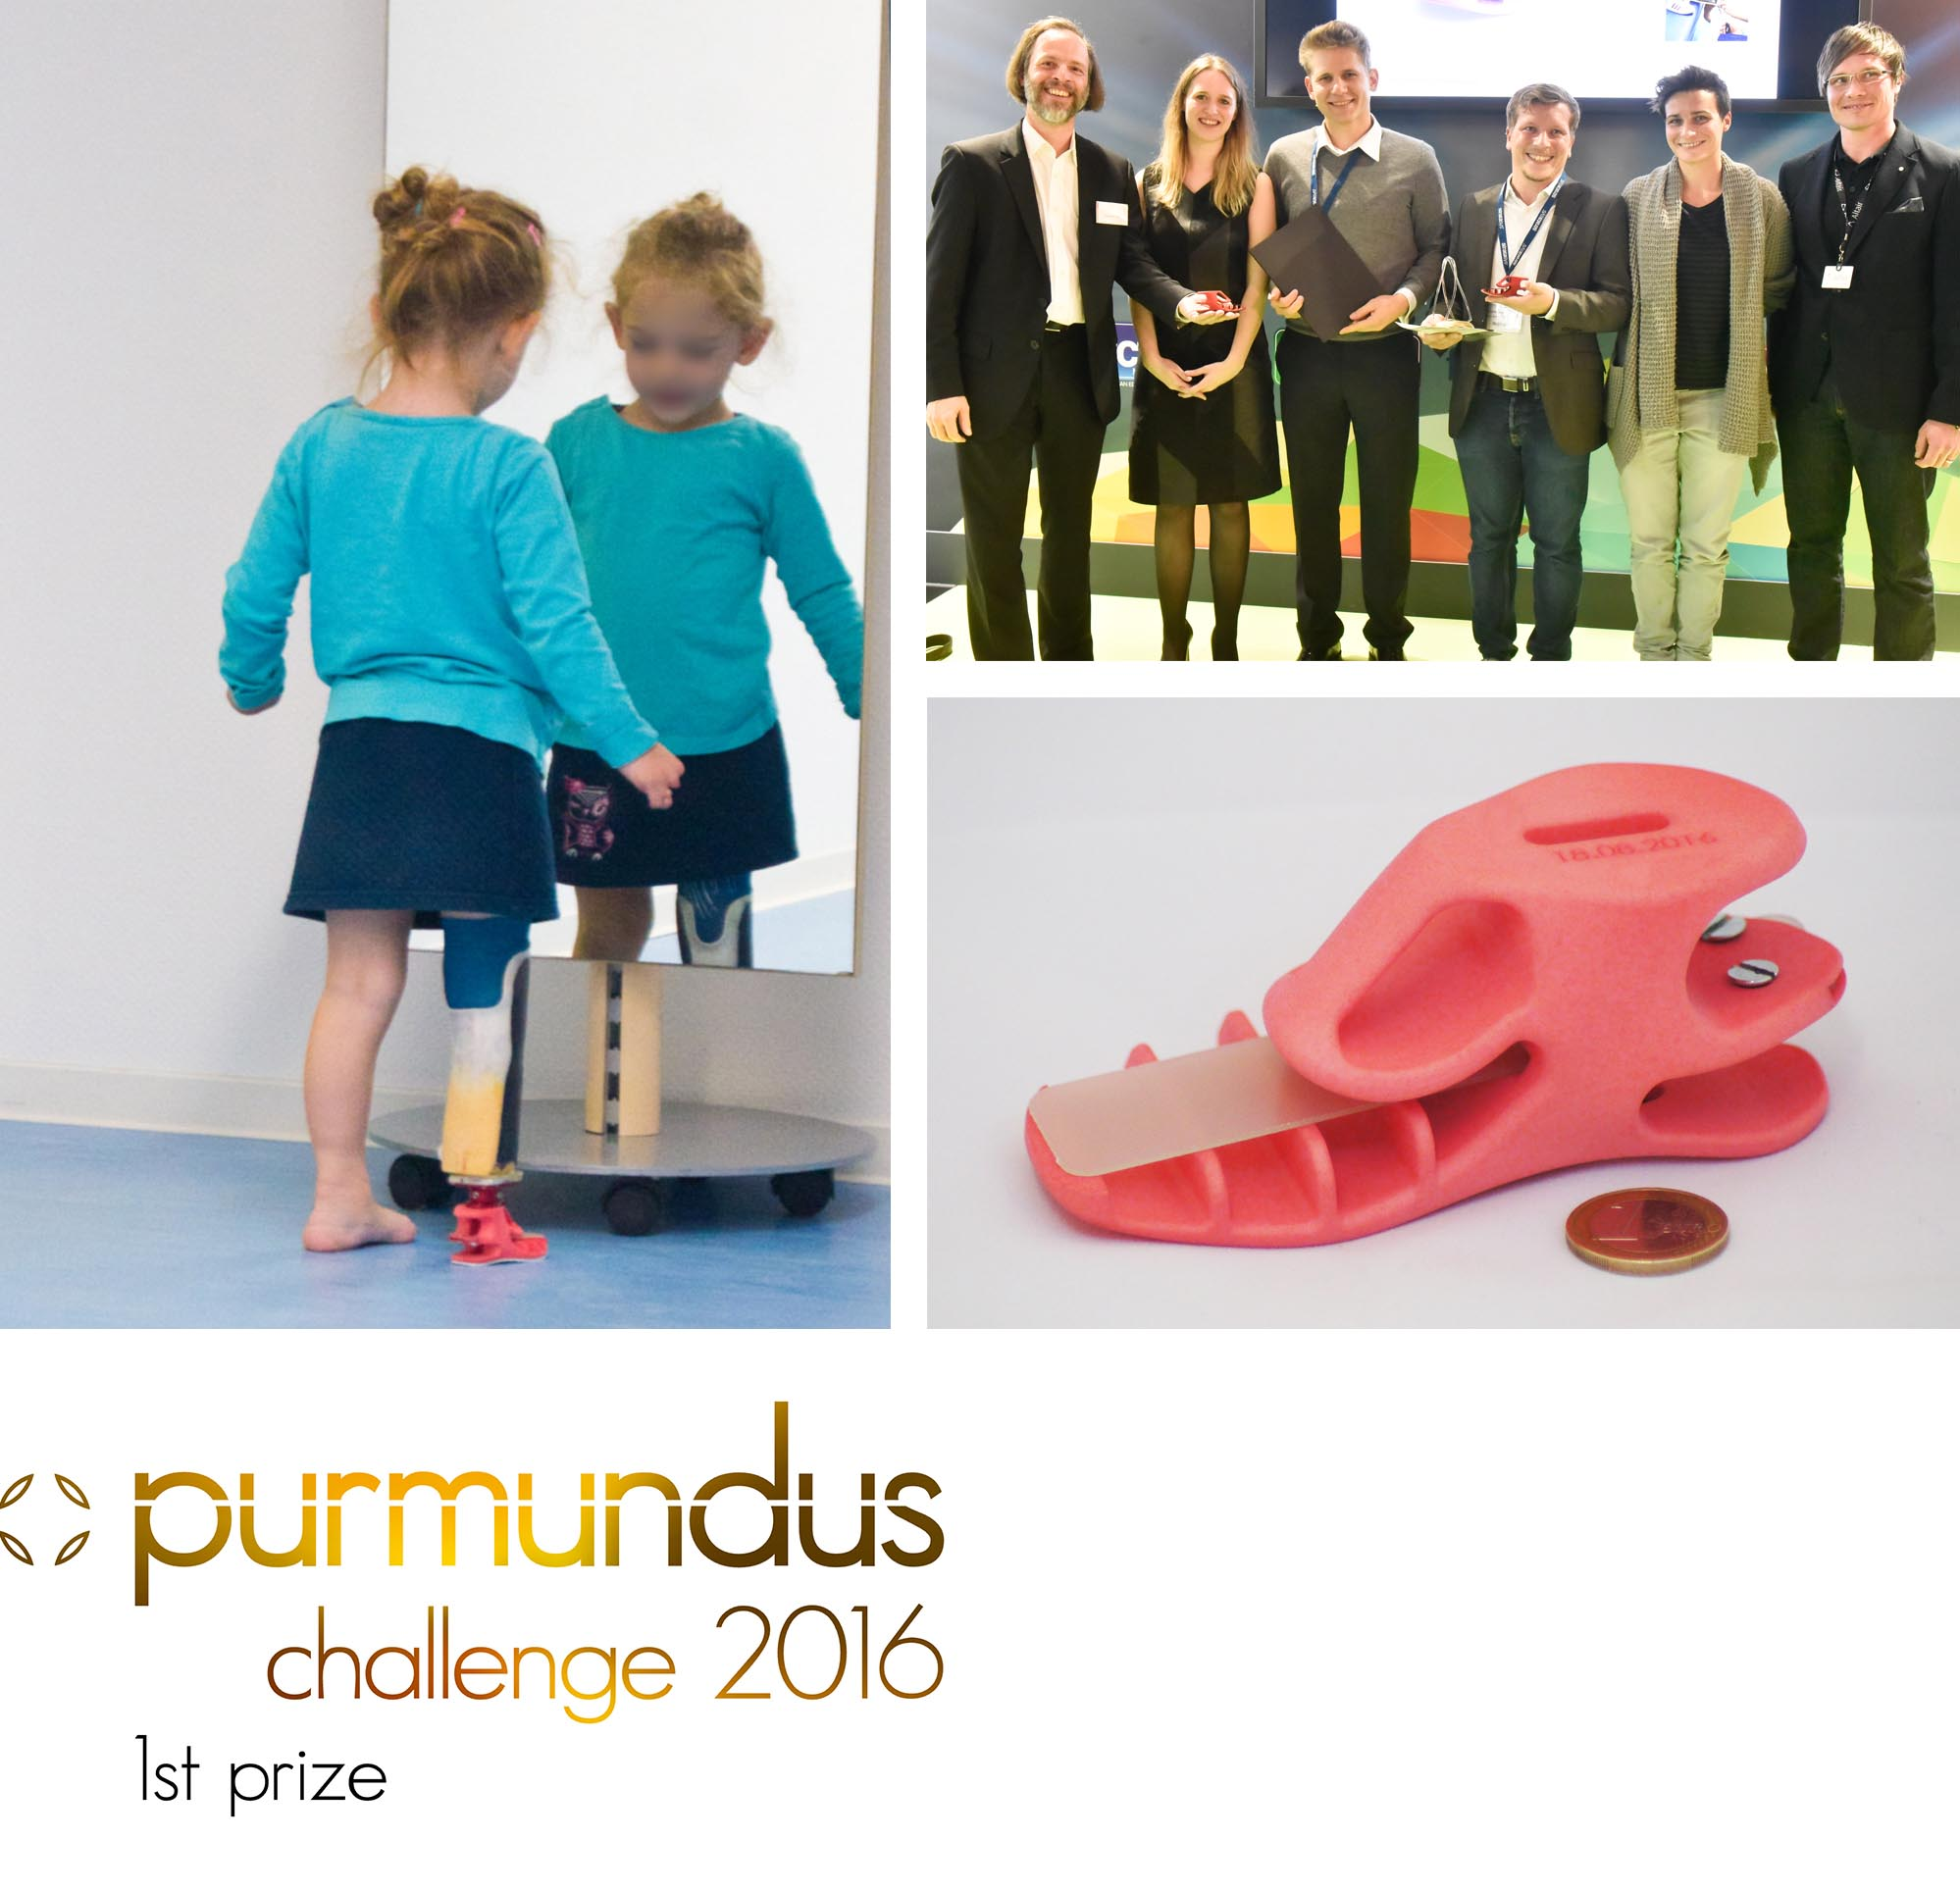 Firstep winners of Purmundus. Image via Purmundus Challenge.